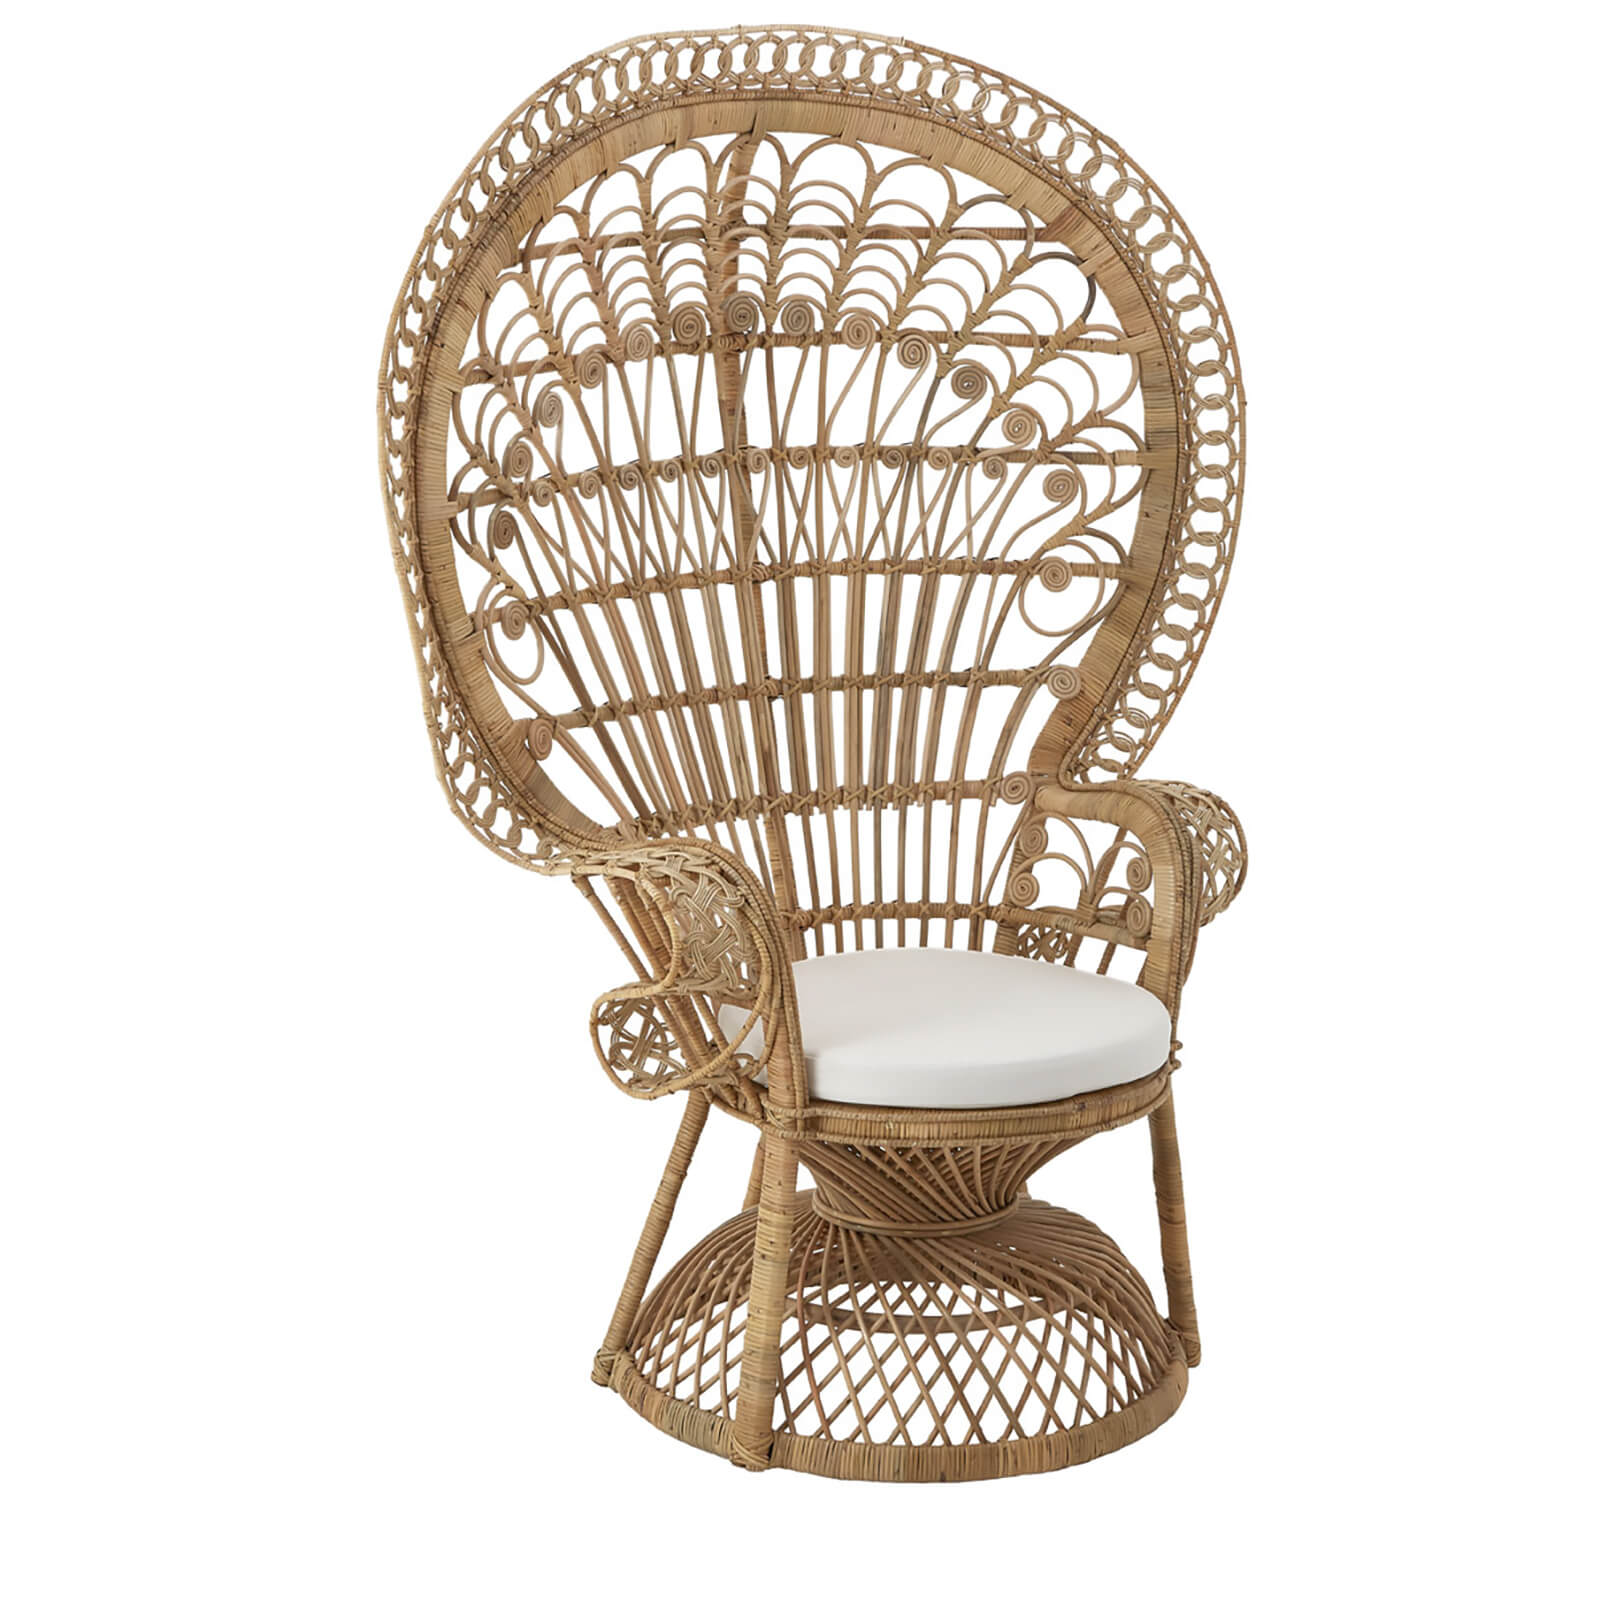 Fifty Five South Woodstock Peacock Rattan Chair - Natural